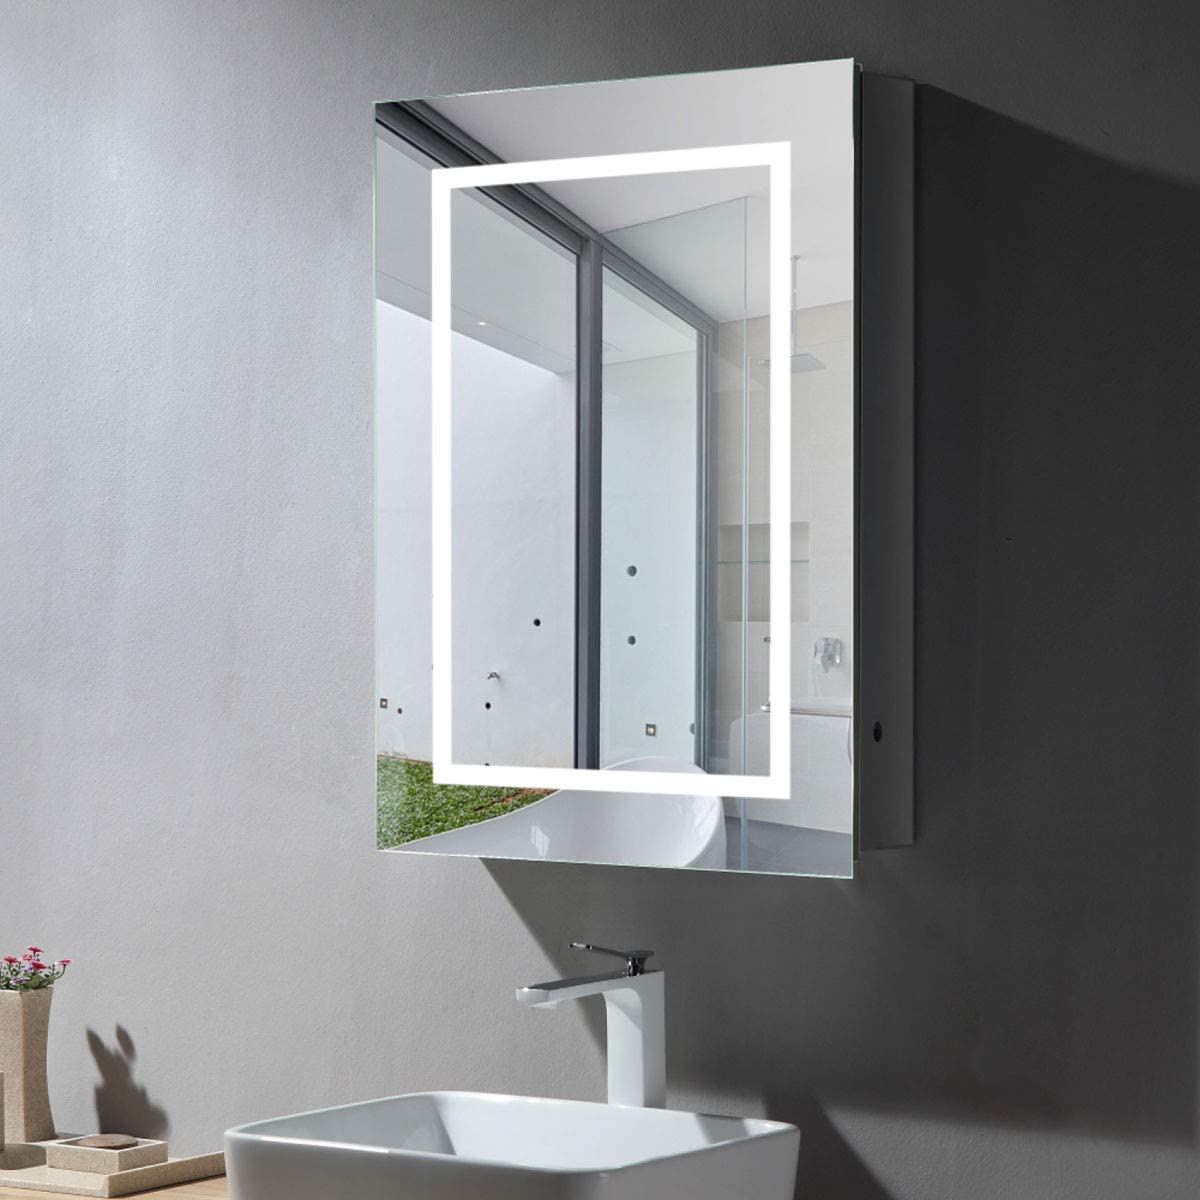 Amazon Com 24 X 32 Inch 2432 In Led Lighted Bathroom Medicine Cabinet Illuminated Wall Mount Aluminum Mirror Cabinet With Infrared Sensor E Ns169 Kitchen Dining